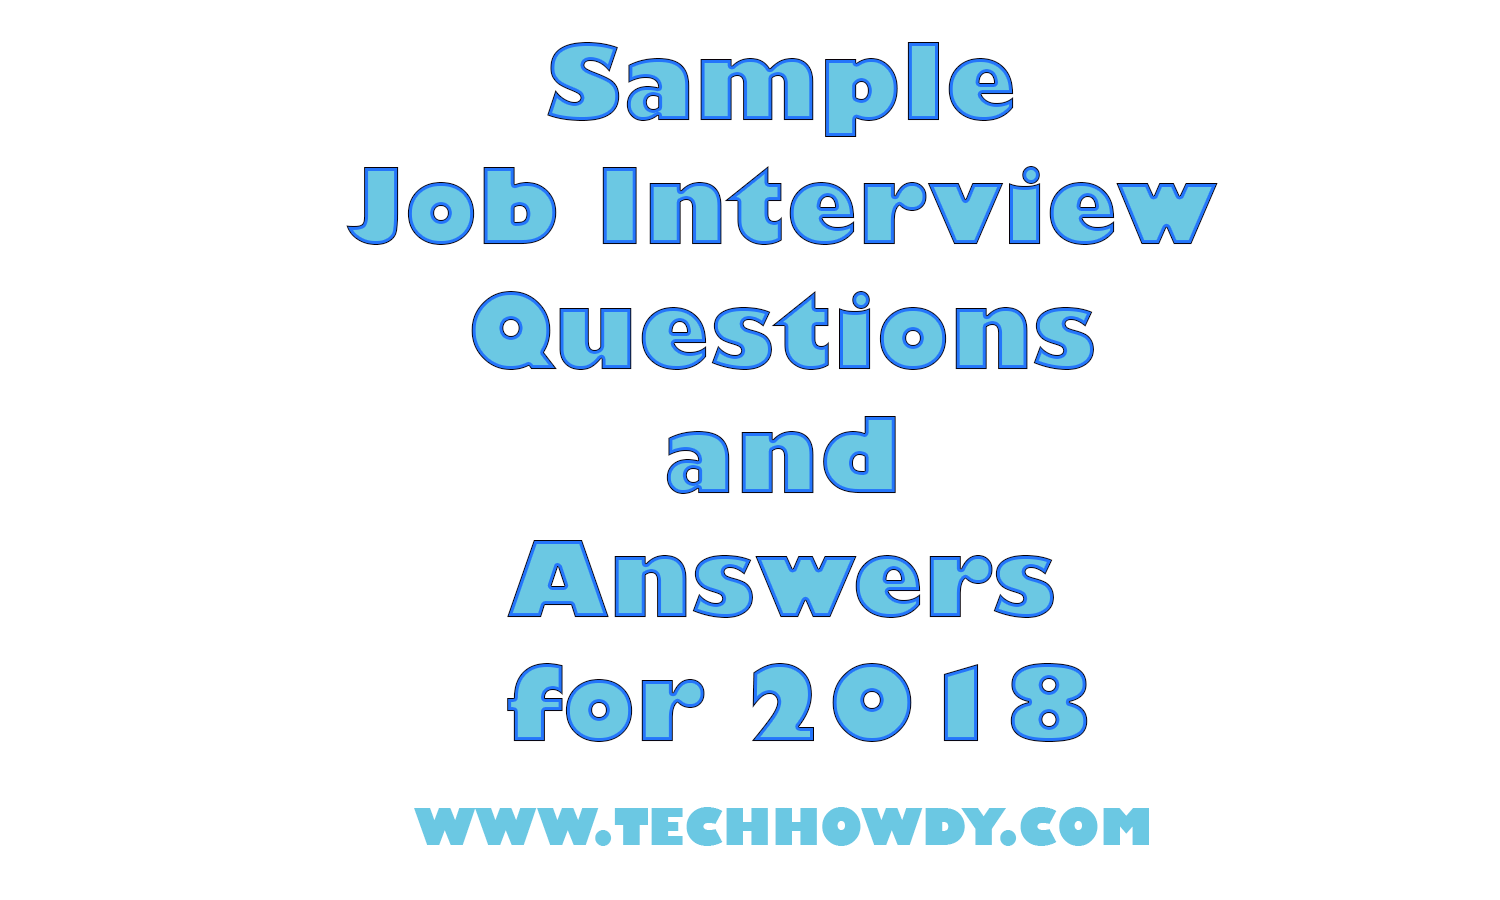 Sample Job Interview Questions And Answers For